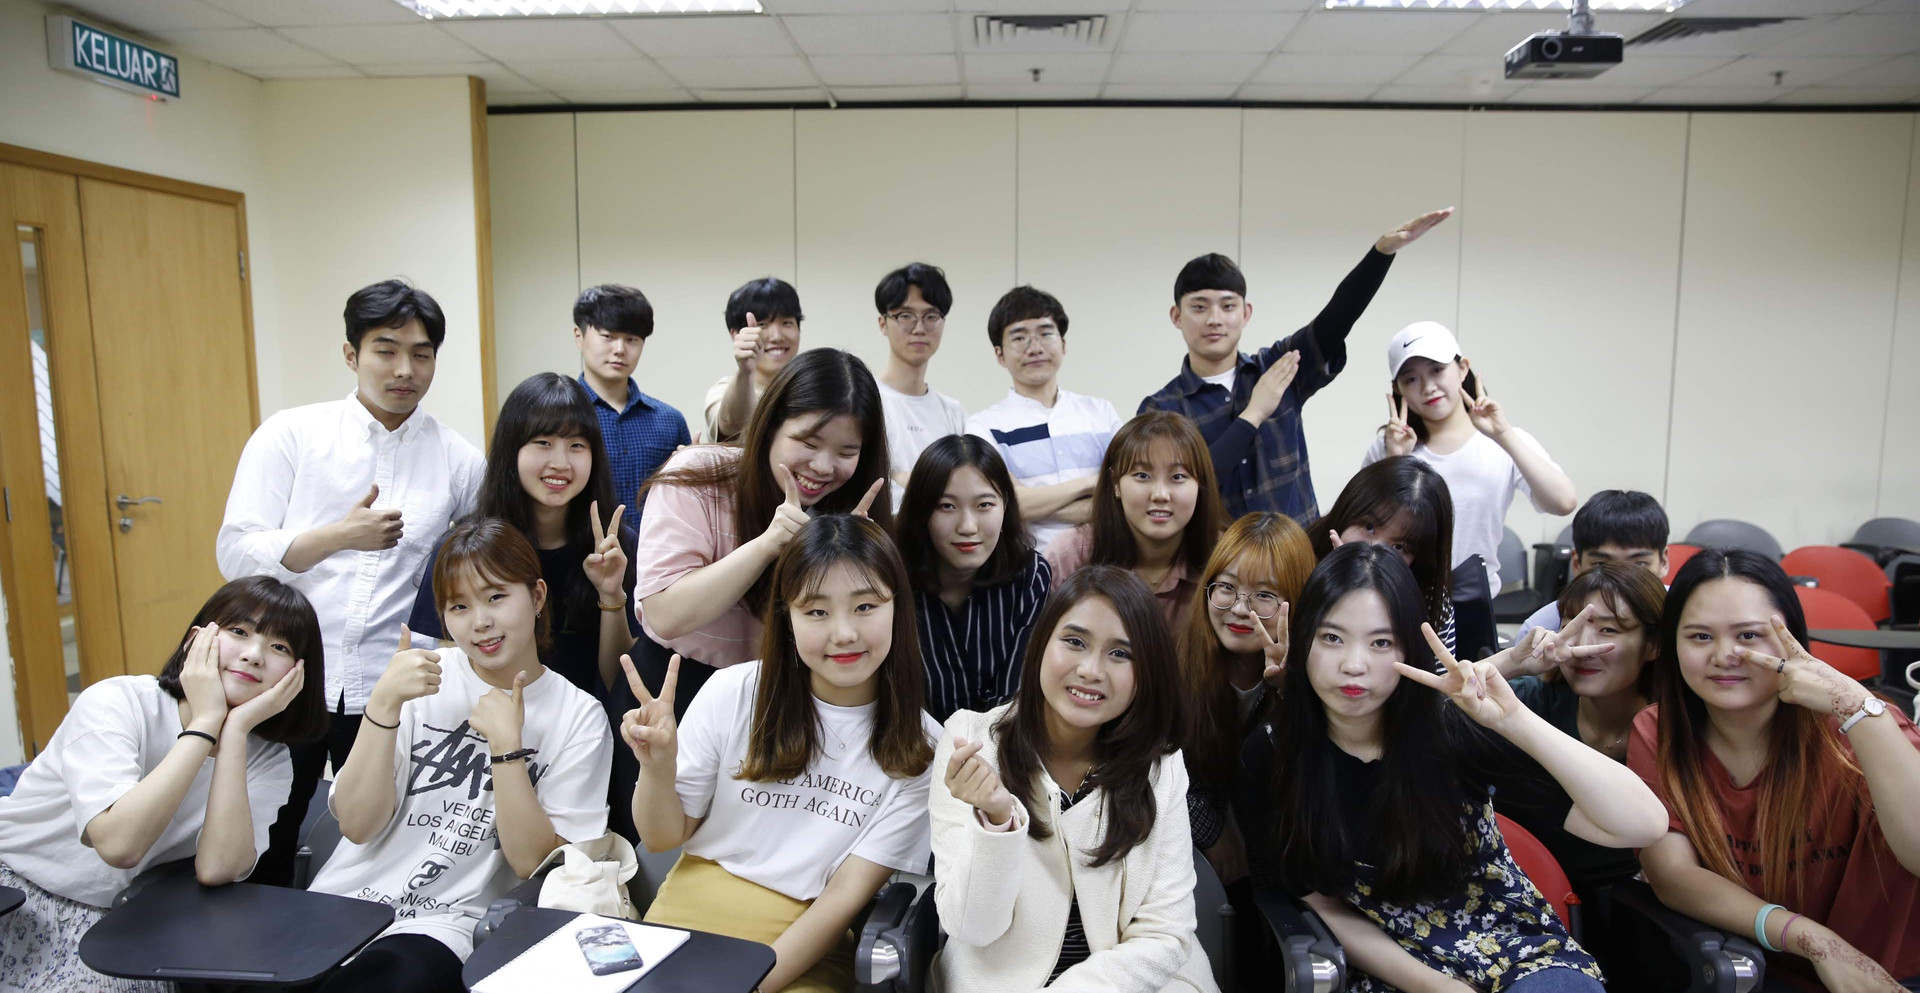 unikl exchange students Korea